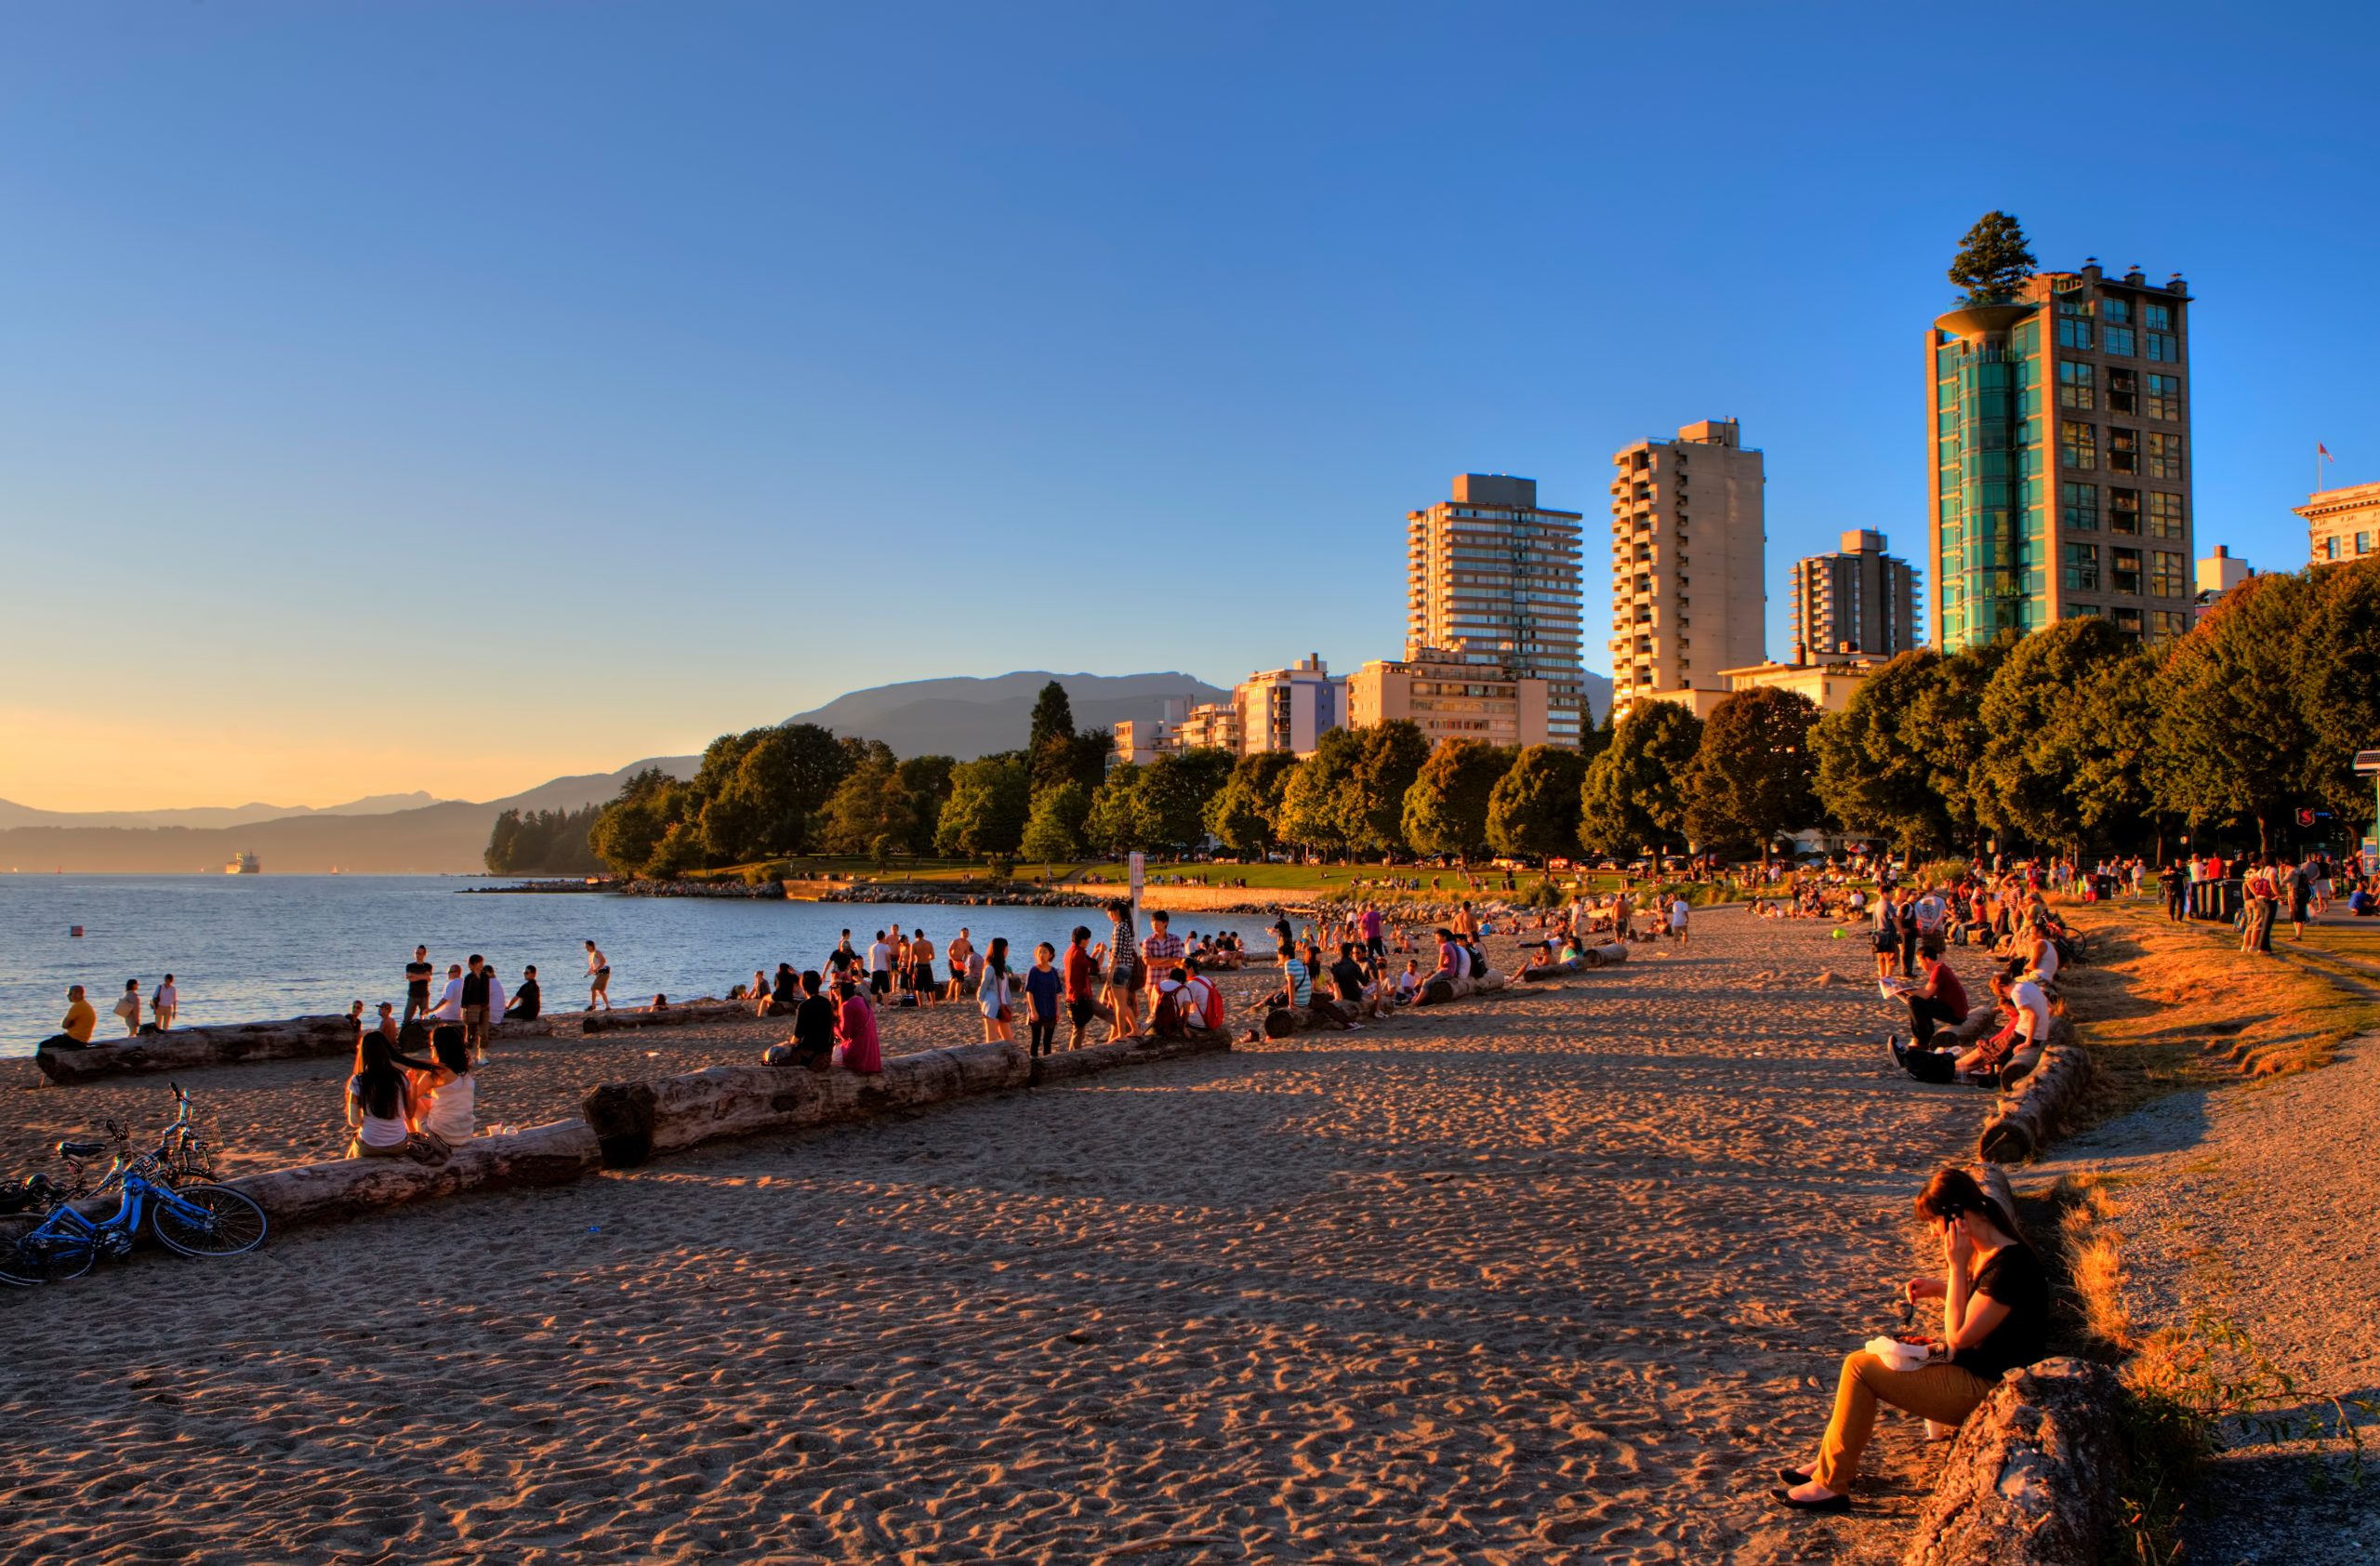 Vancouvers English Bay